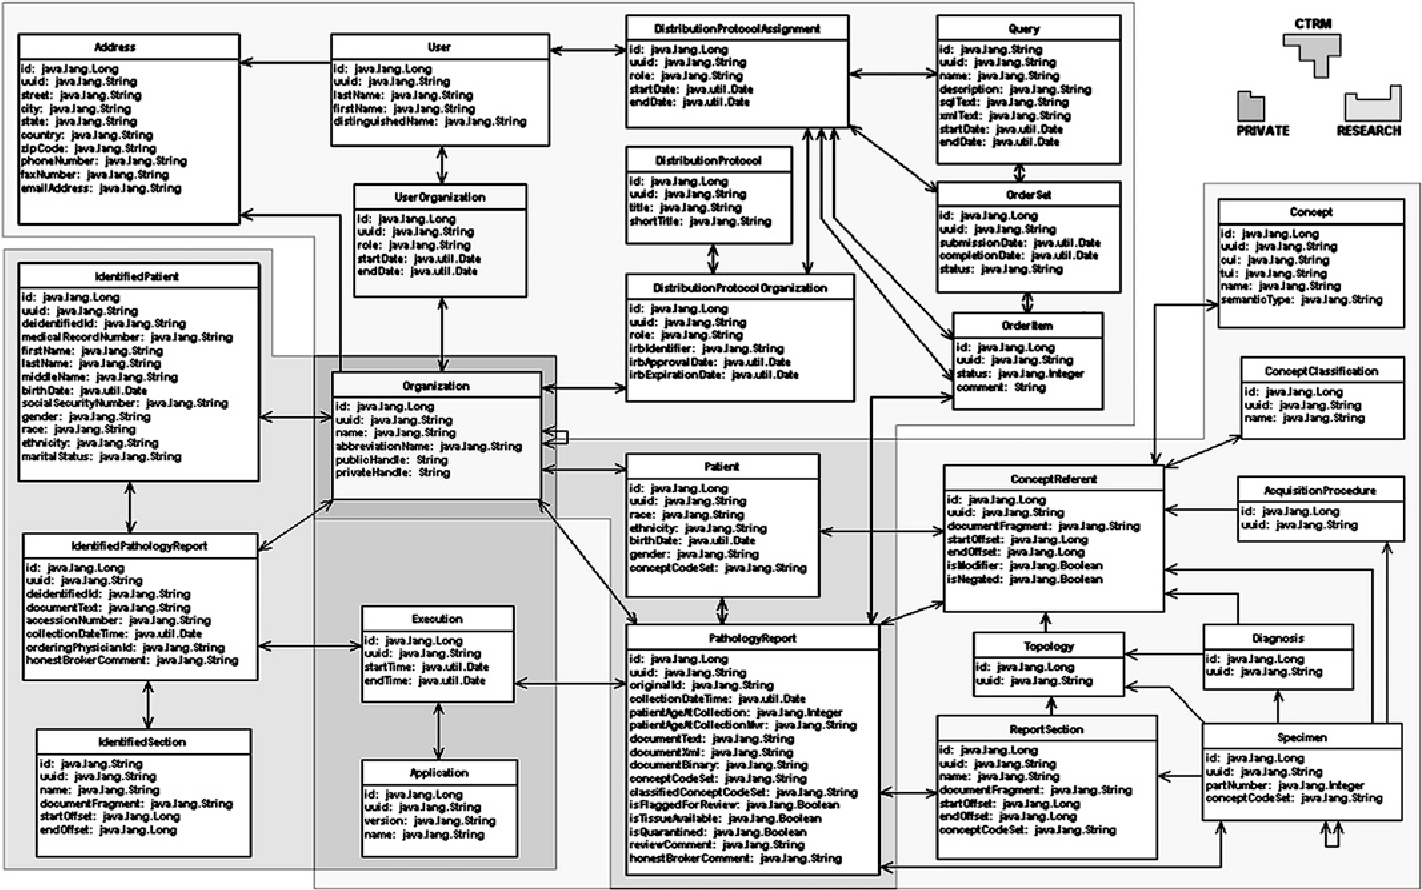 Figure 1 from caTIES: a grid based system for coding and retrieval